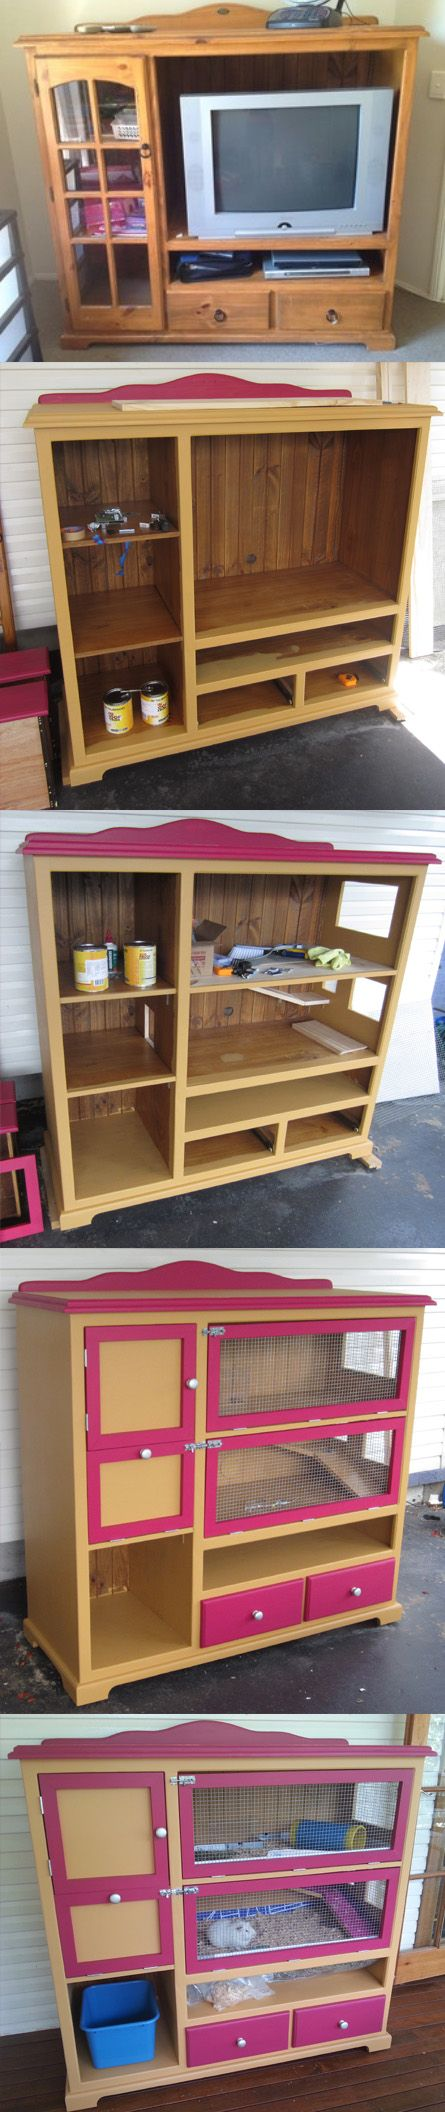 Diy bunny hutch had a hard time finding an inspiration for Diy guinea pig hutch